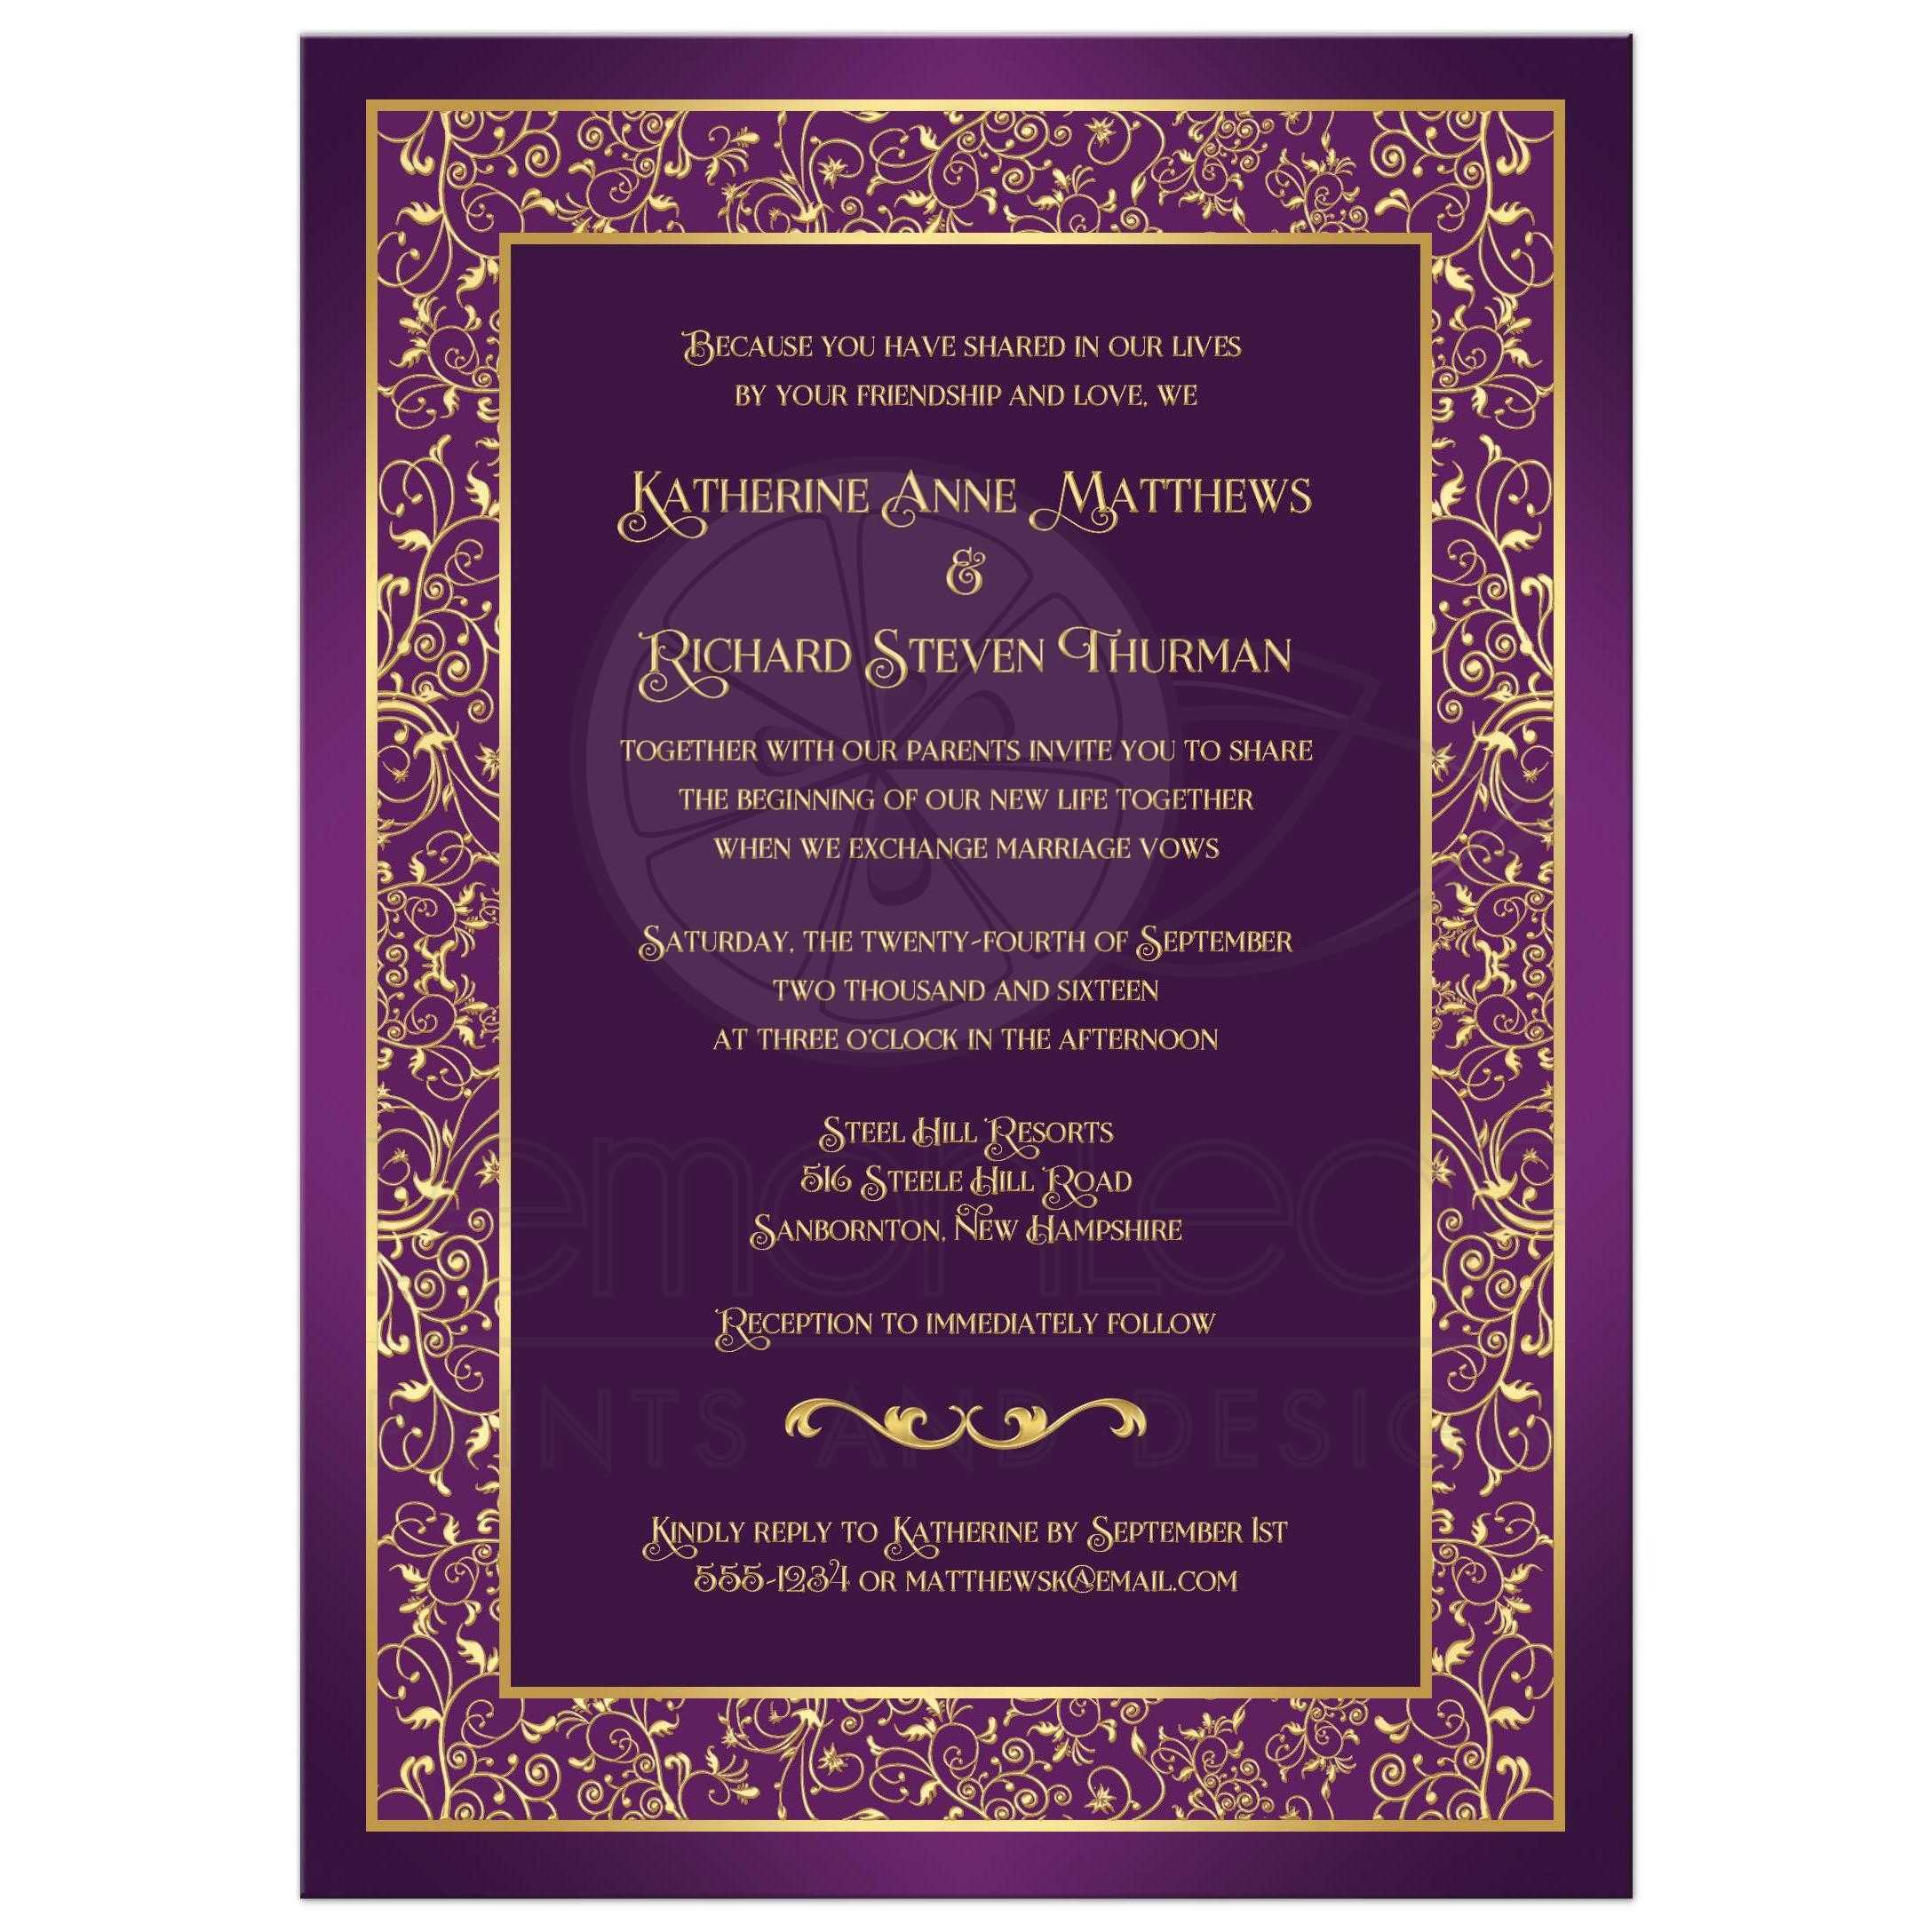 purple and gold wedding invitations purple and gold wedding Wedding Invitation Purple Gold Ornate Scrolls Vines